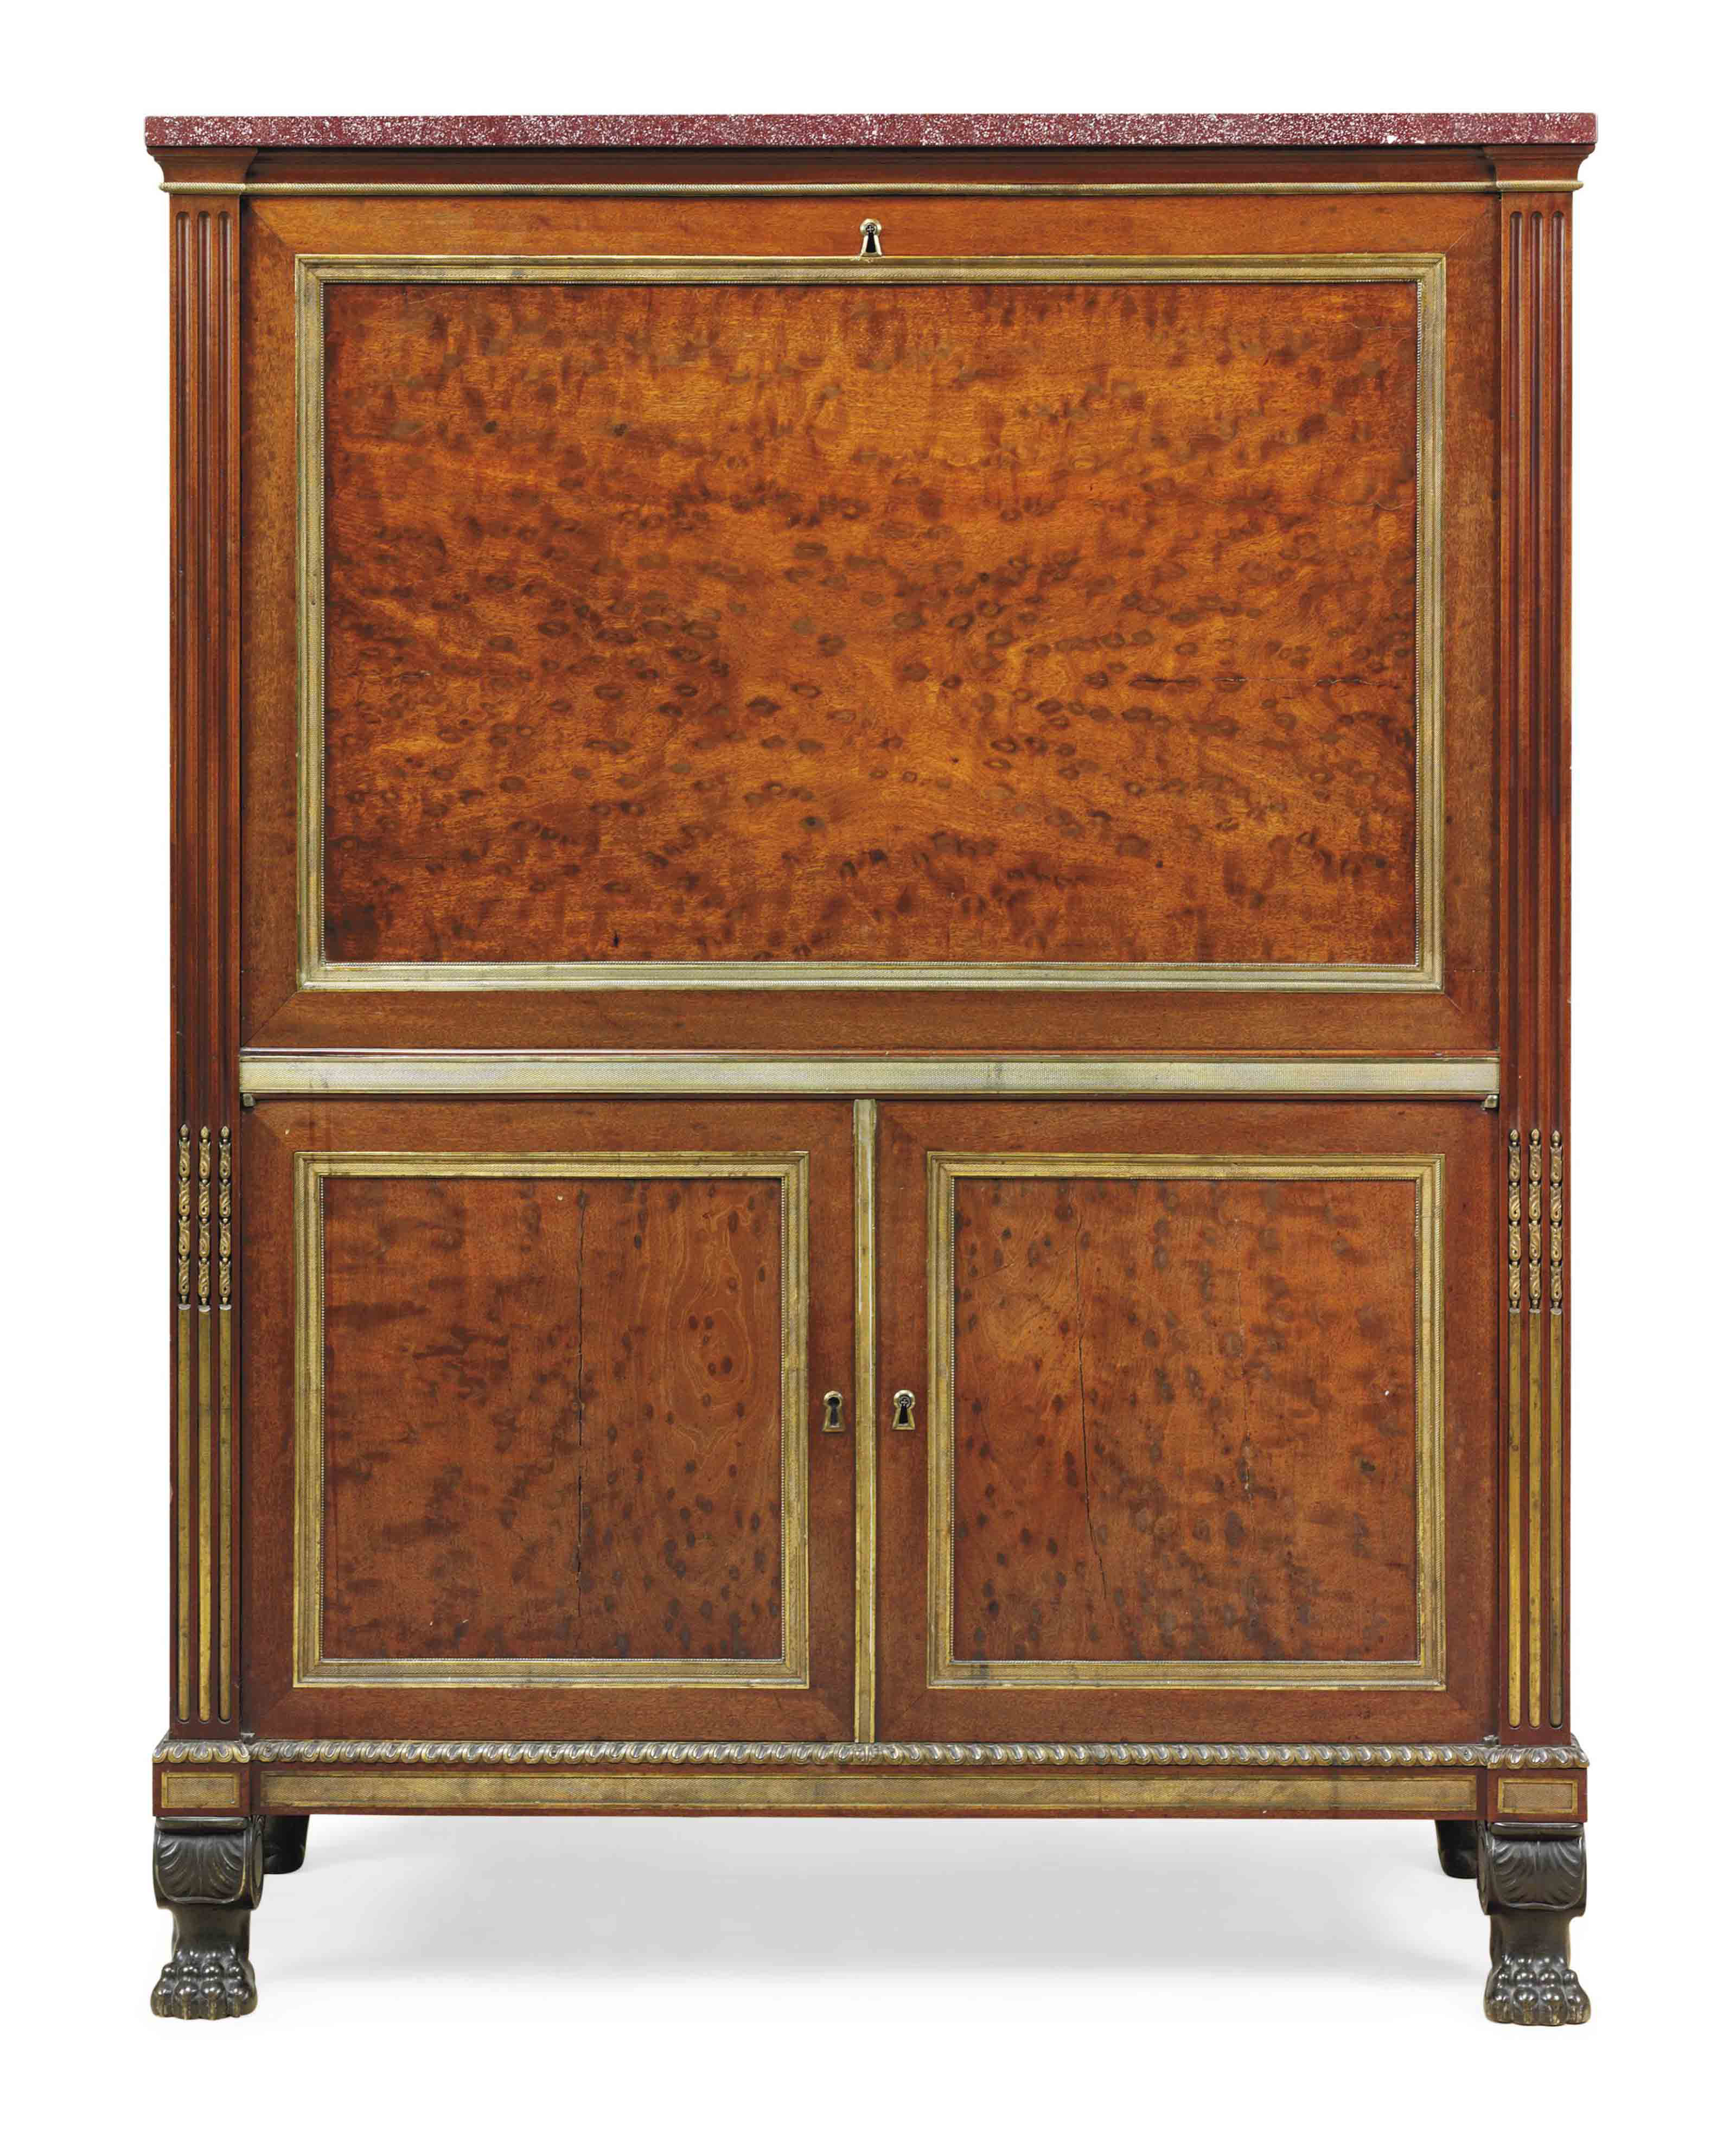 A DIRECTOIRE ORMOLU AND PATINATED BRONZE-MOUNTED ACAJOU MOUCHETE SECRETAIRE A ABATTANT